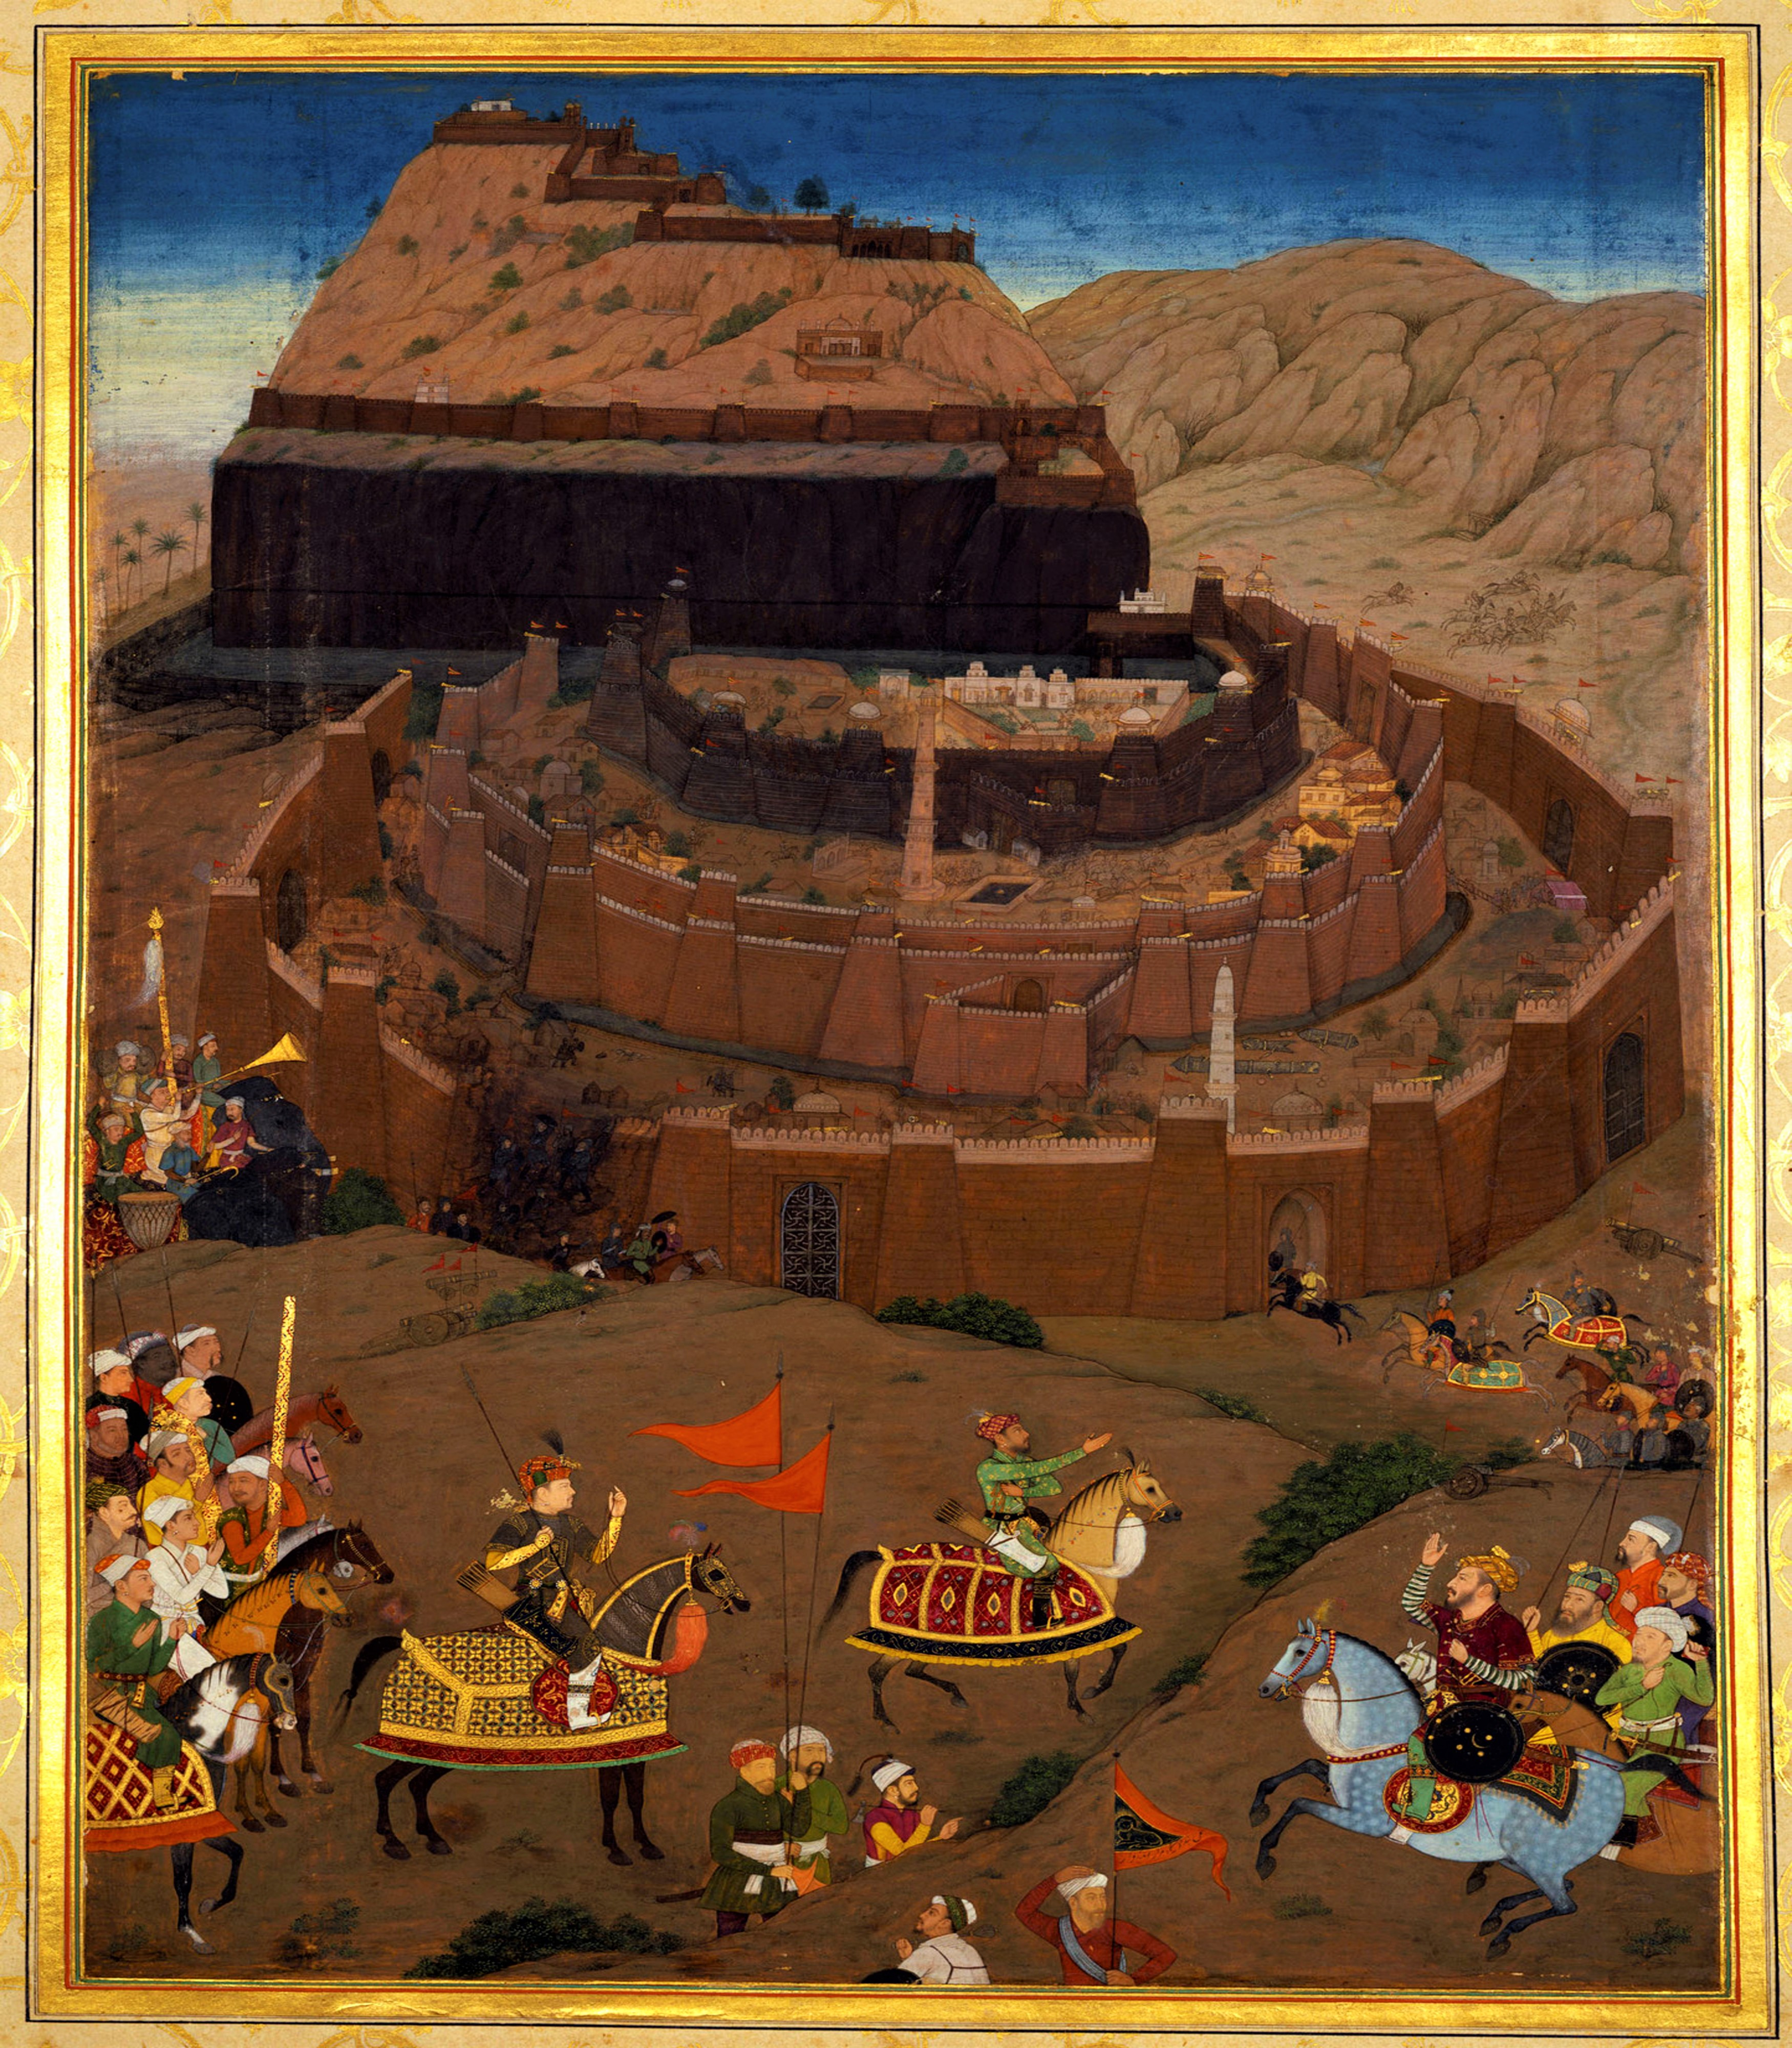 Capture of Daulatabad by Mughals